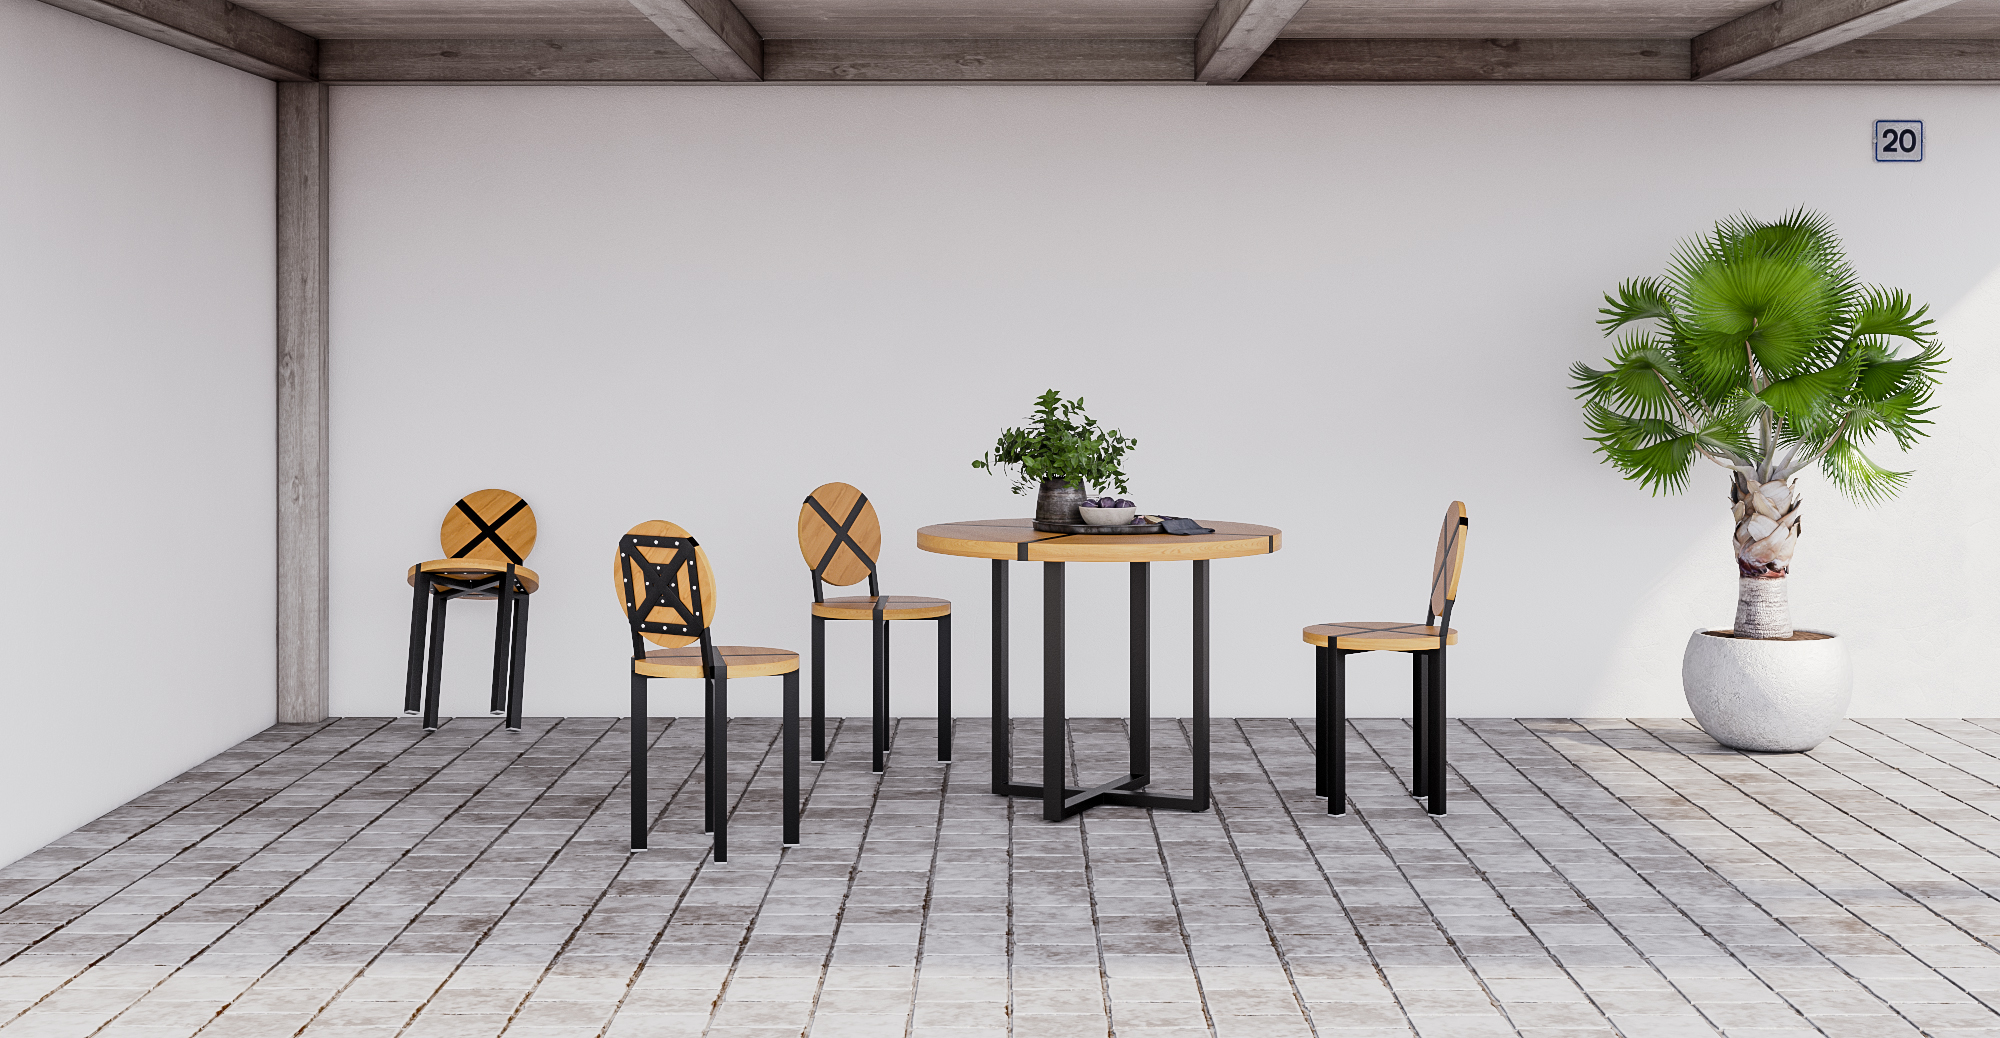 a modern outdoor dining set made of wood